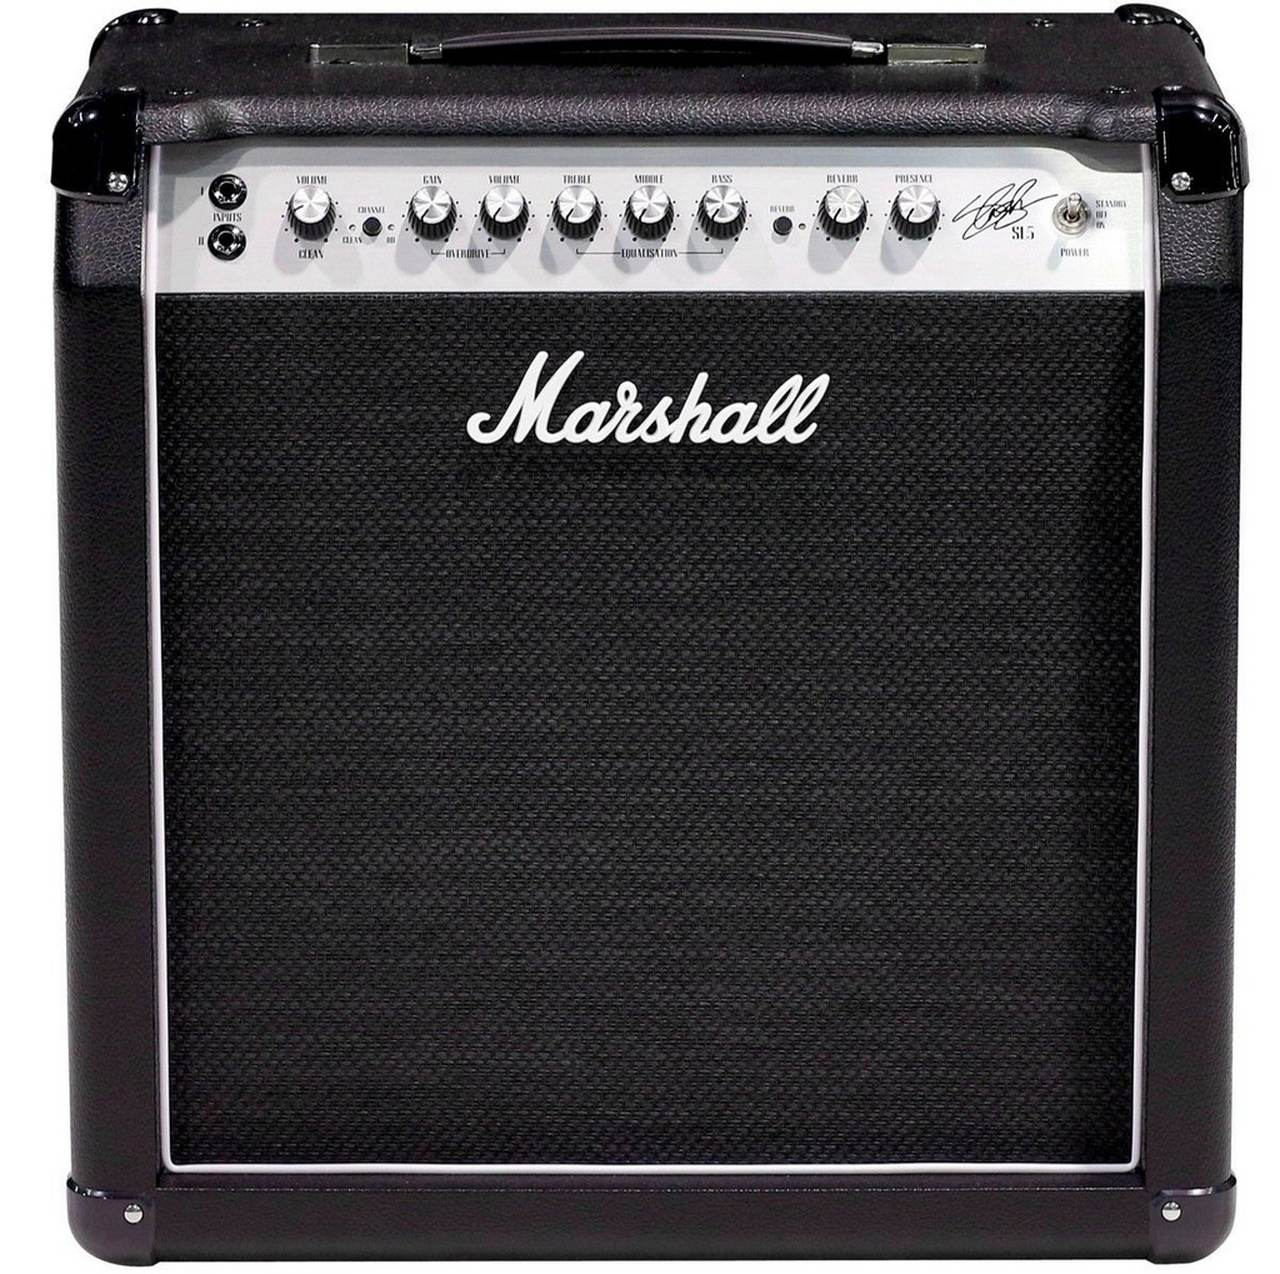 Caixa Amplificada Marshall Slash SL5 Signature 5W 1x12 para Guitarra